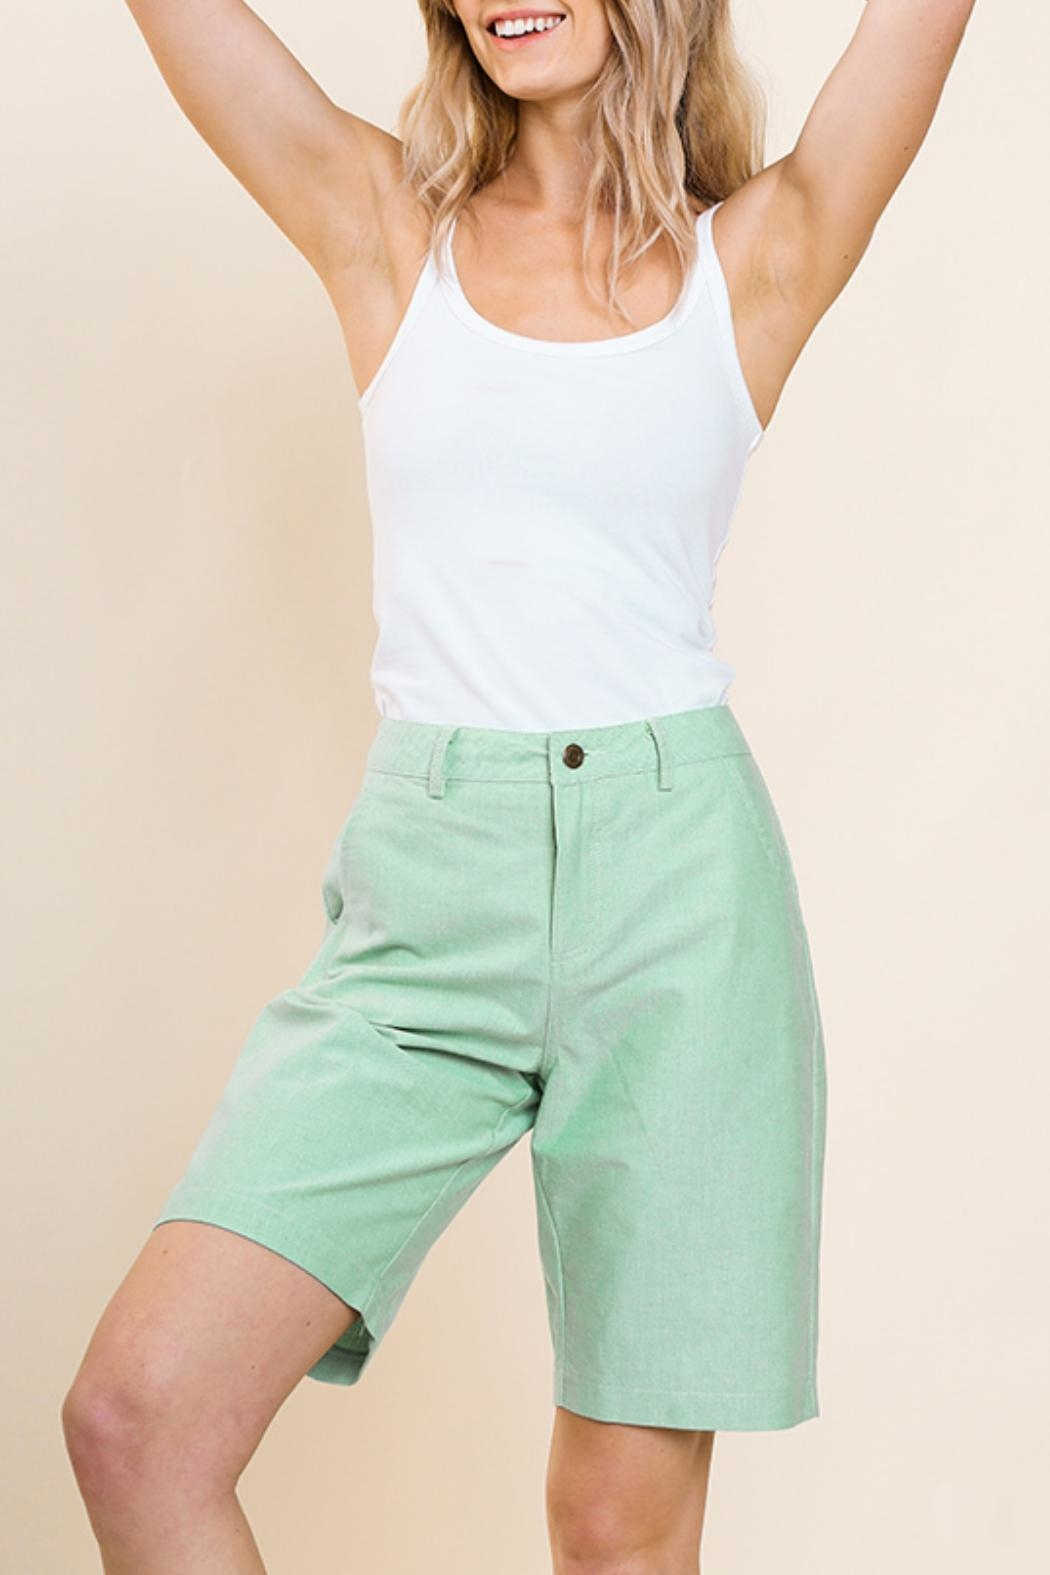 Umgee USA Green Bermuda Shorts - Front Full Image